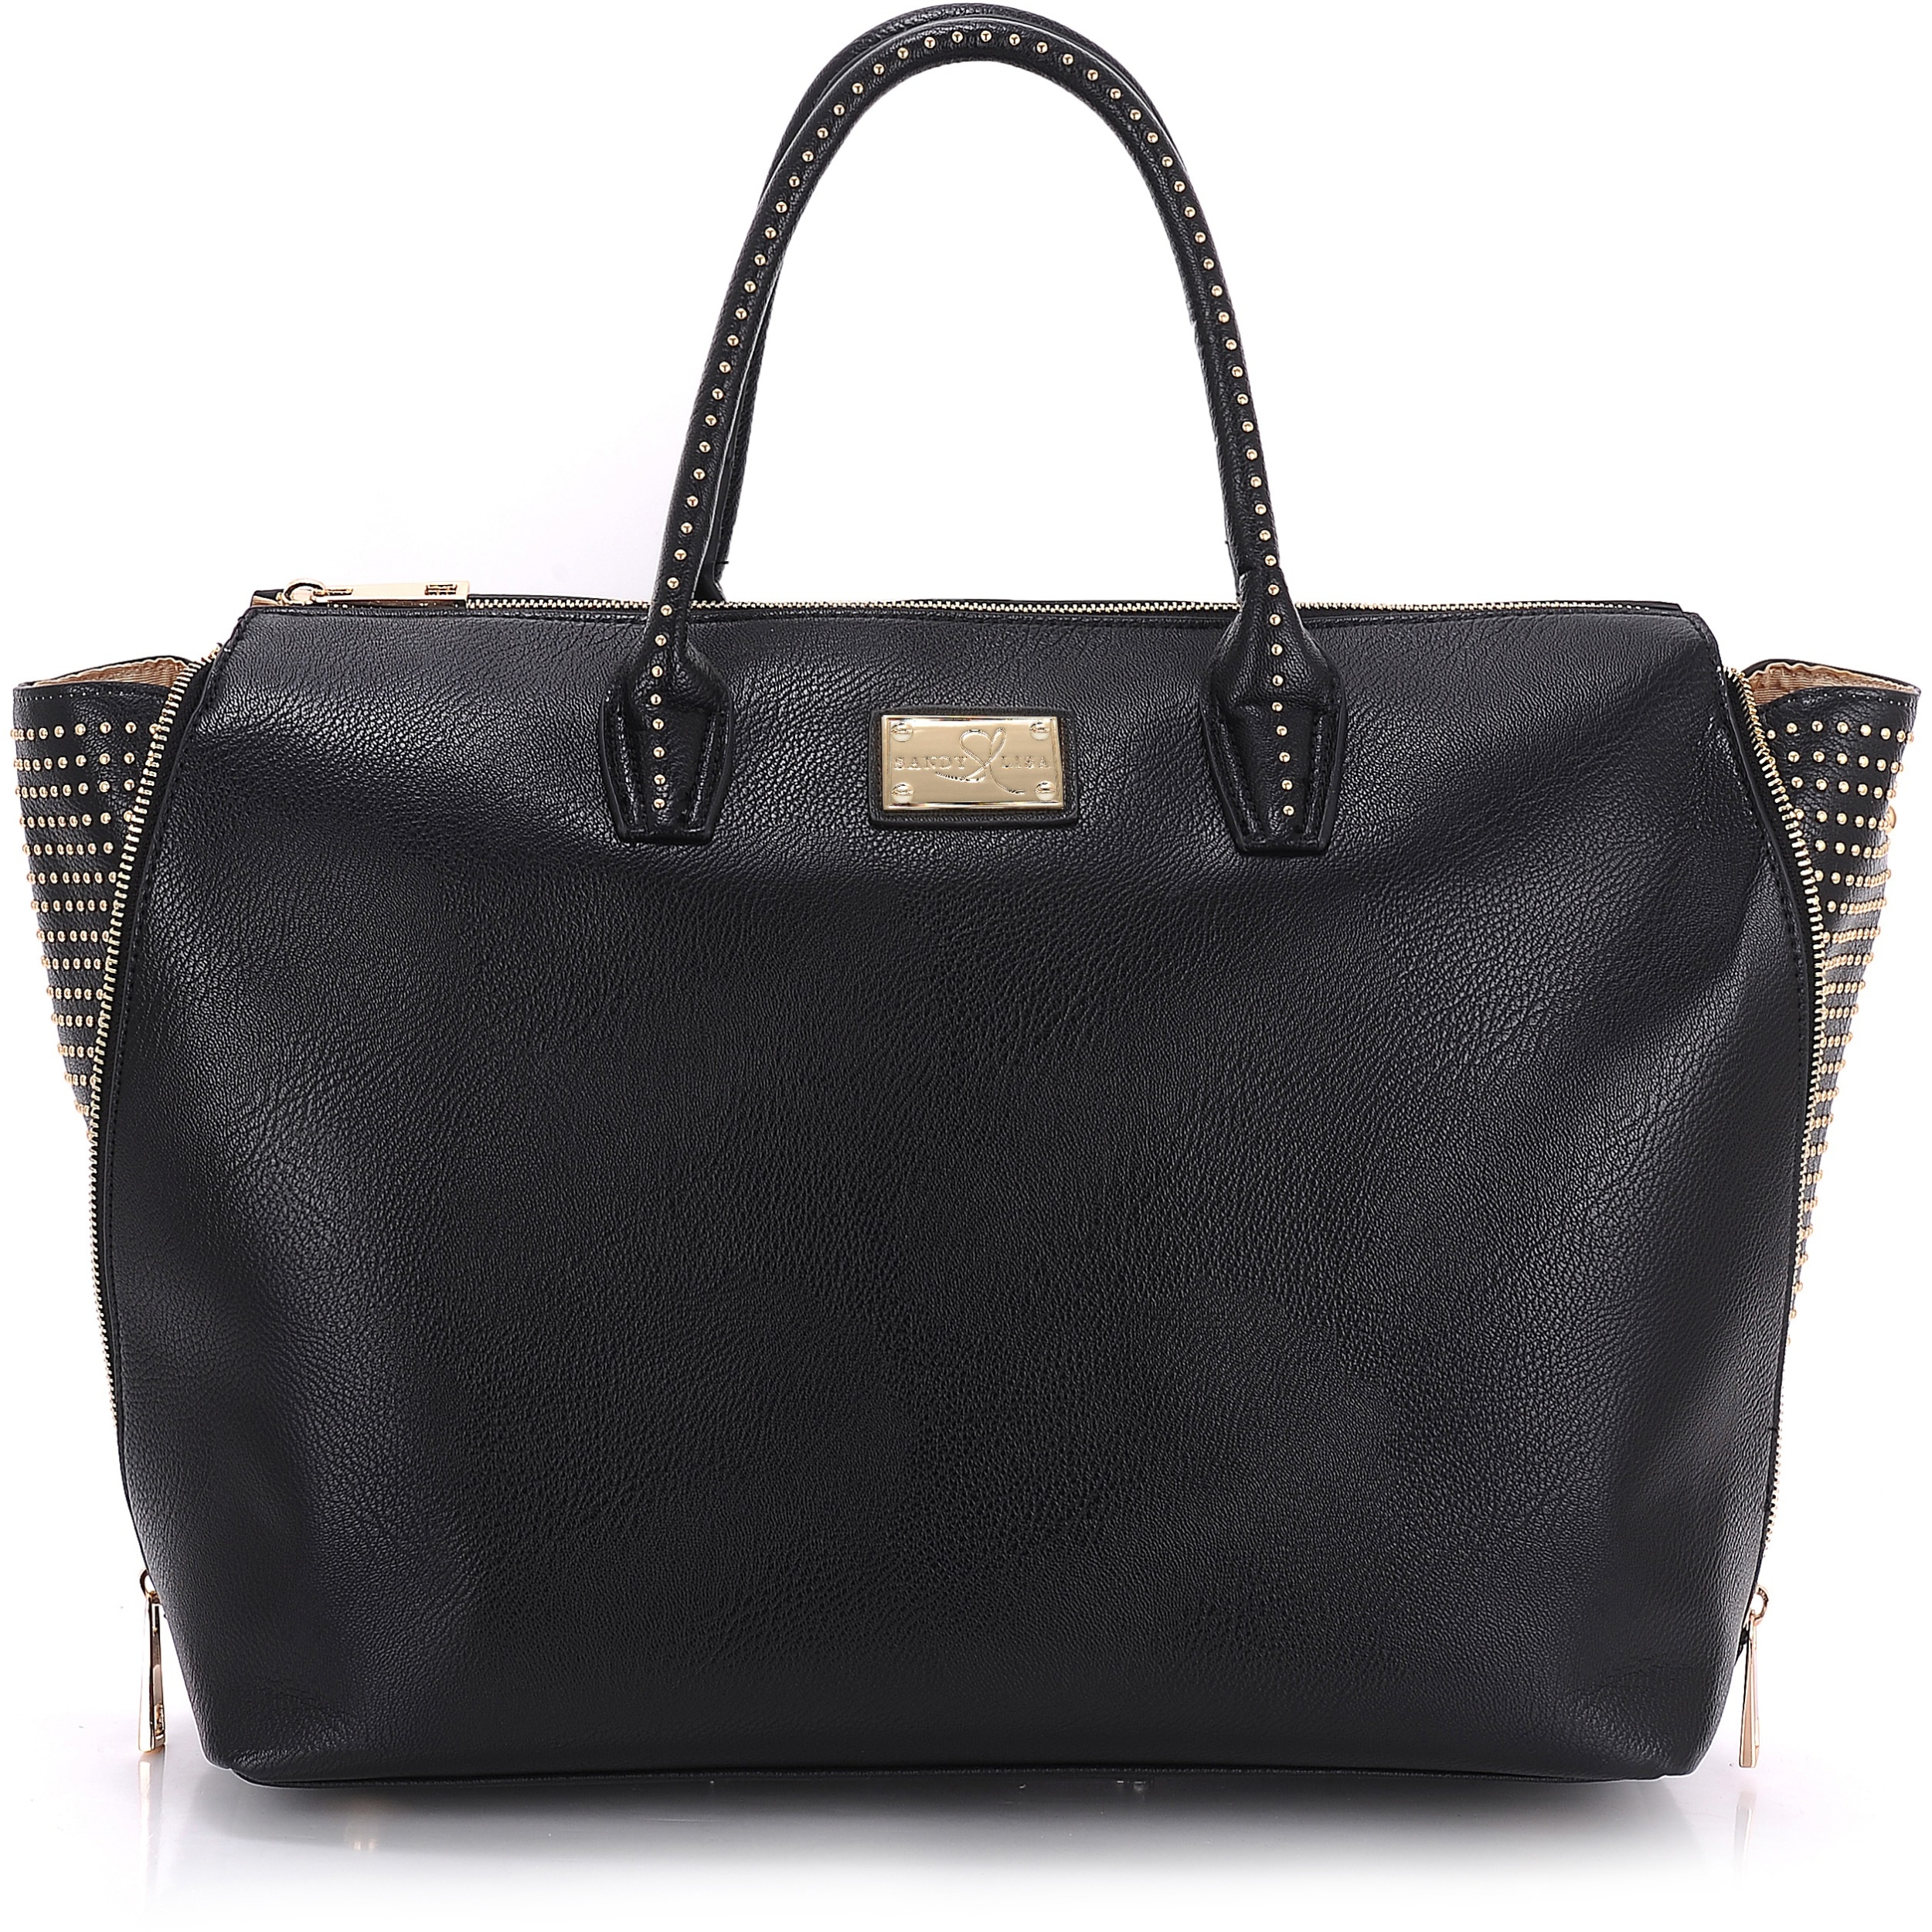 The Milan Wing Tote is a classic design and will fit up to a (Refurbished)